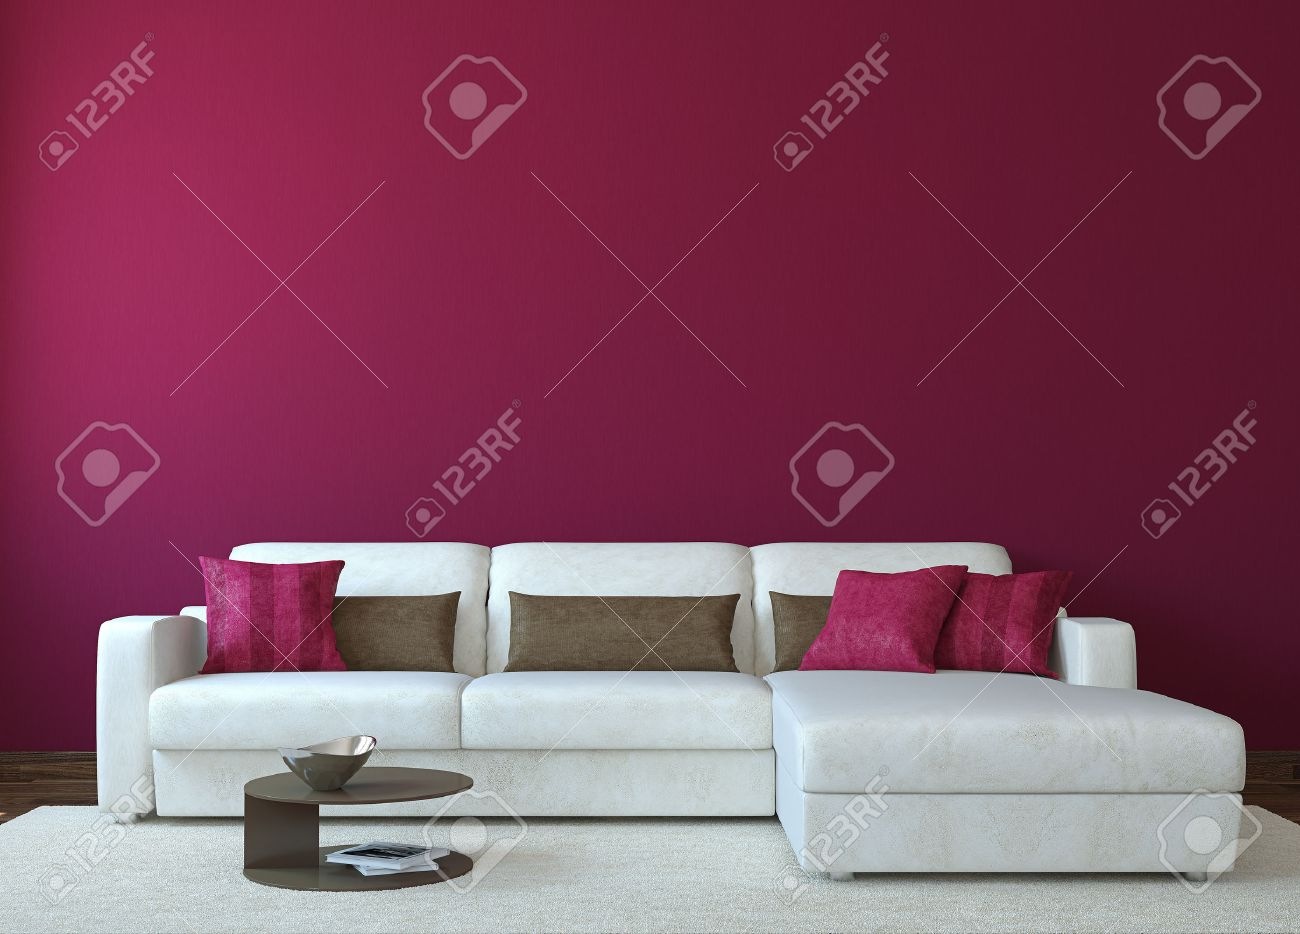 Modern living-room interior with white couch near empty red wall. 3d render. Photo for book cover was made by me. - 46522681